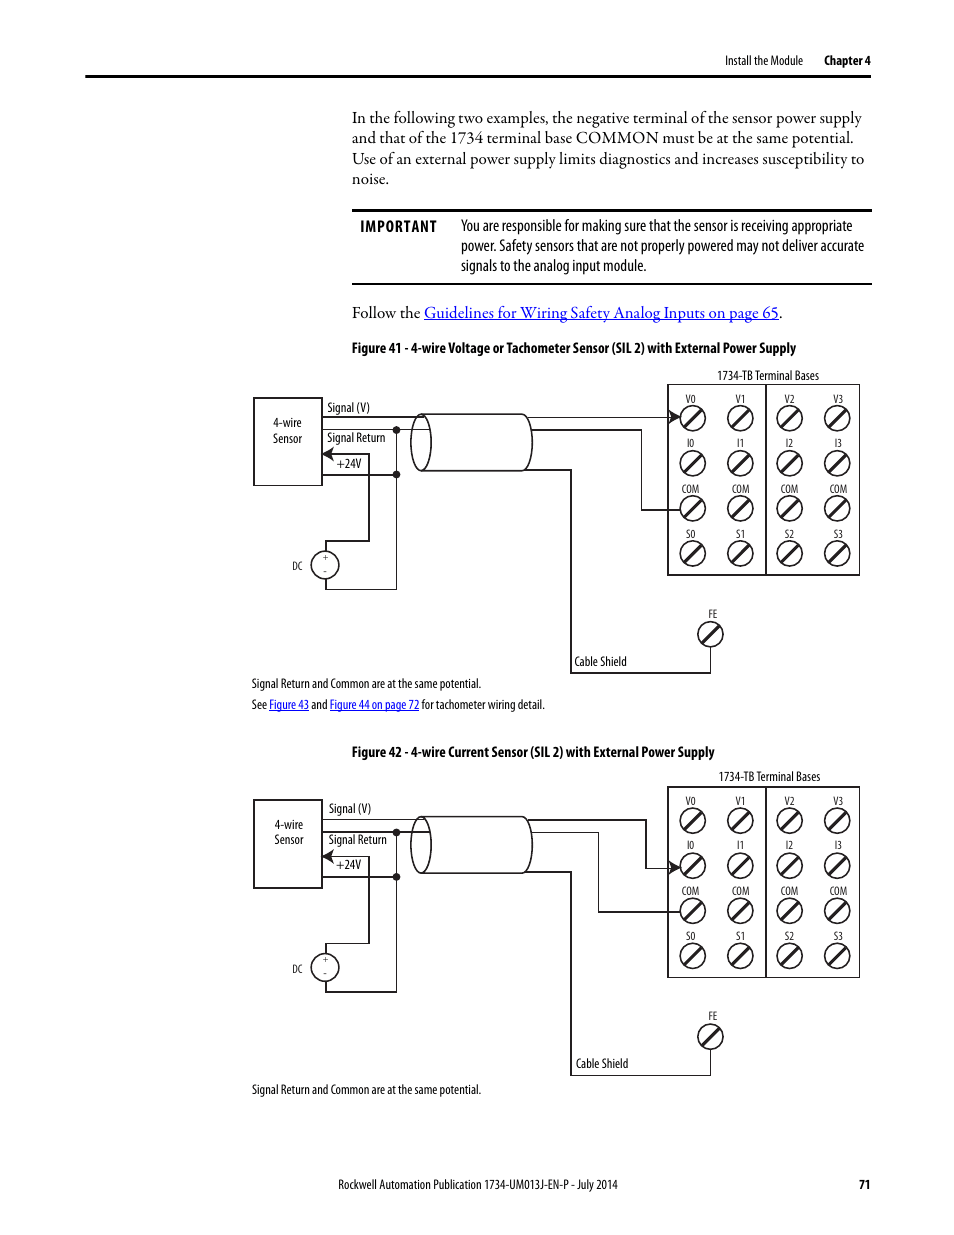 1990 Dodge B250 Wiring Diagram Electrical Diagrams W250 Parts Schematic 3500 Radio Trusted